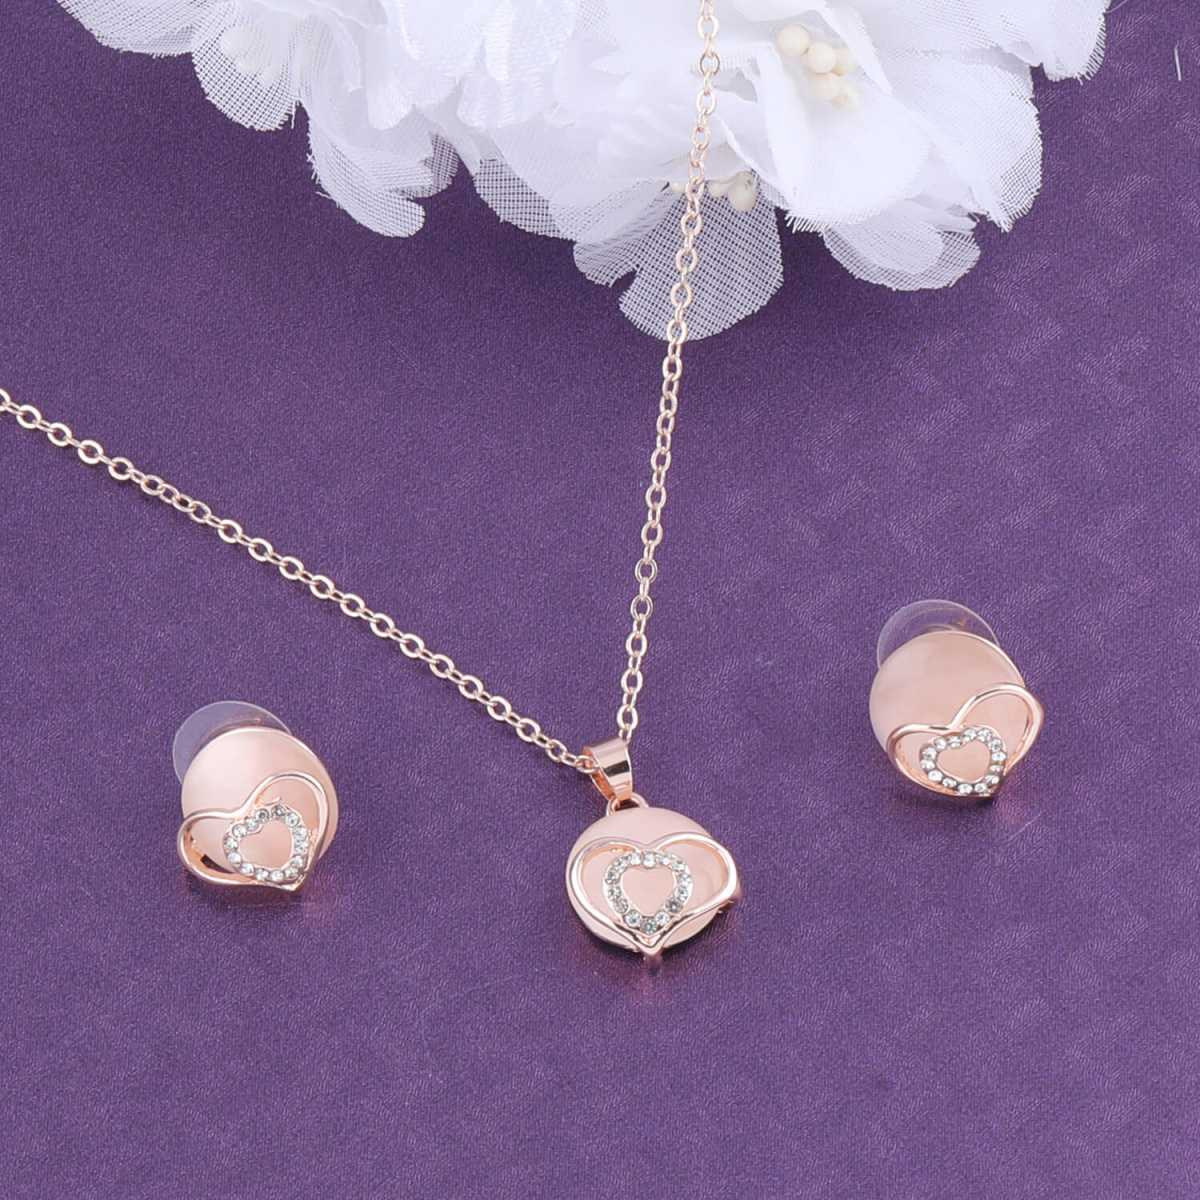 SILVER SHINE Exclusive Delicate Stylish  Pendant Set For Women Girl